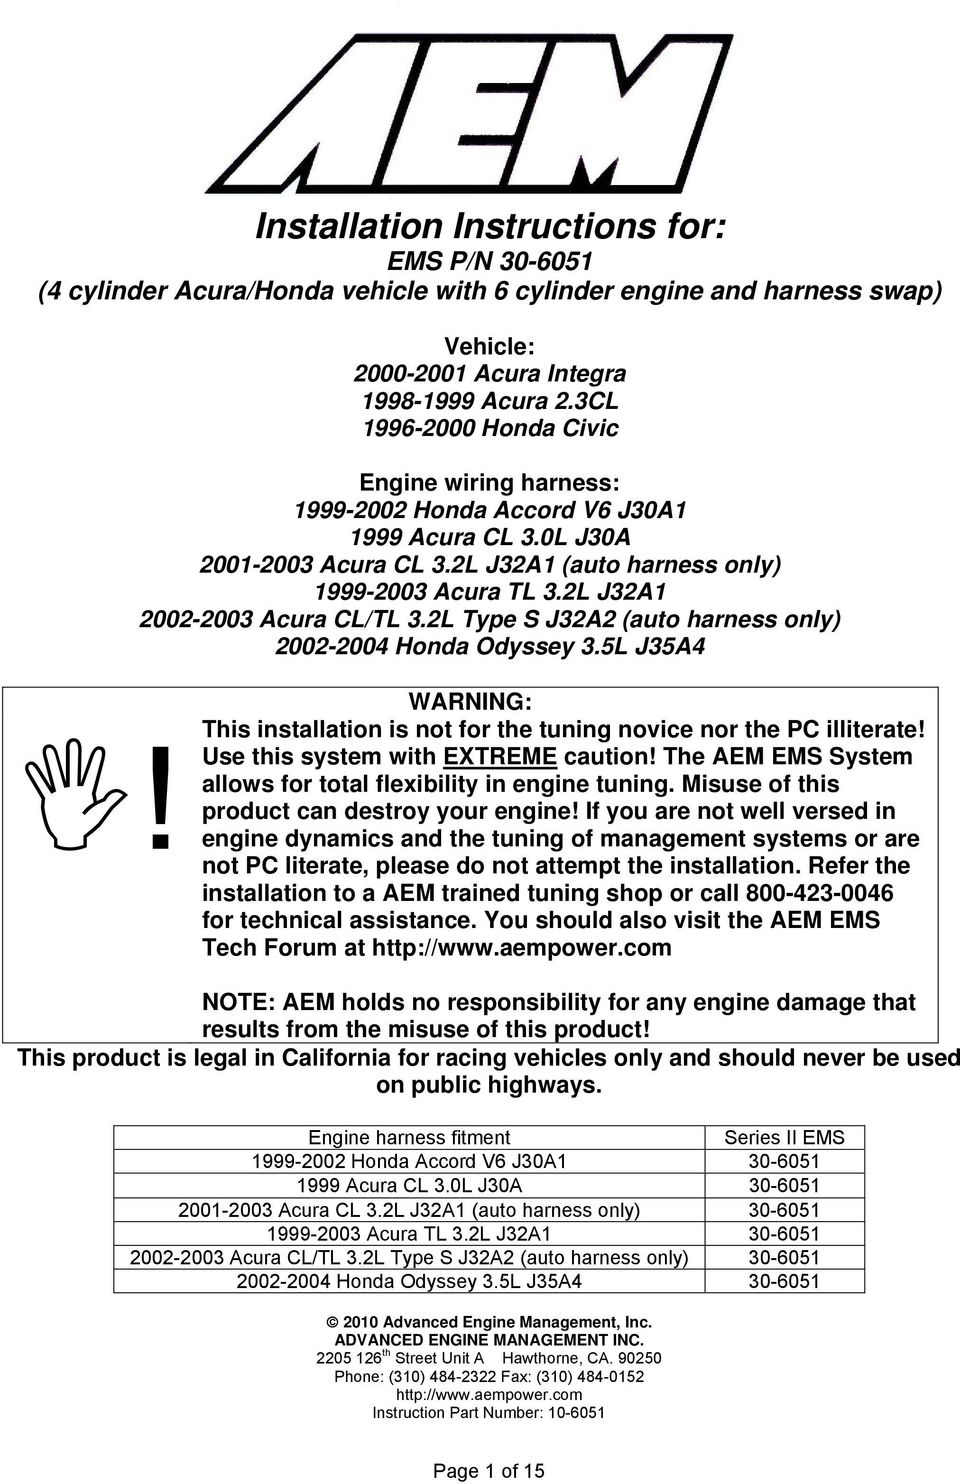 Installation Instructions For Ems P N 4 Cylinder Acura Honda Aem Wiring Harness 2l J32a1 2002 2003 Cl Tl 32l Type S J32a2 Auto